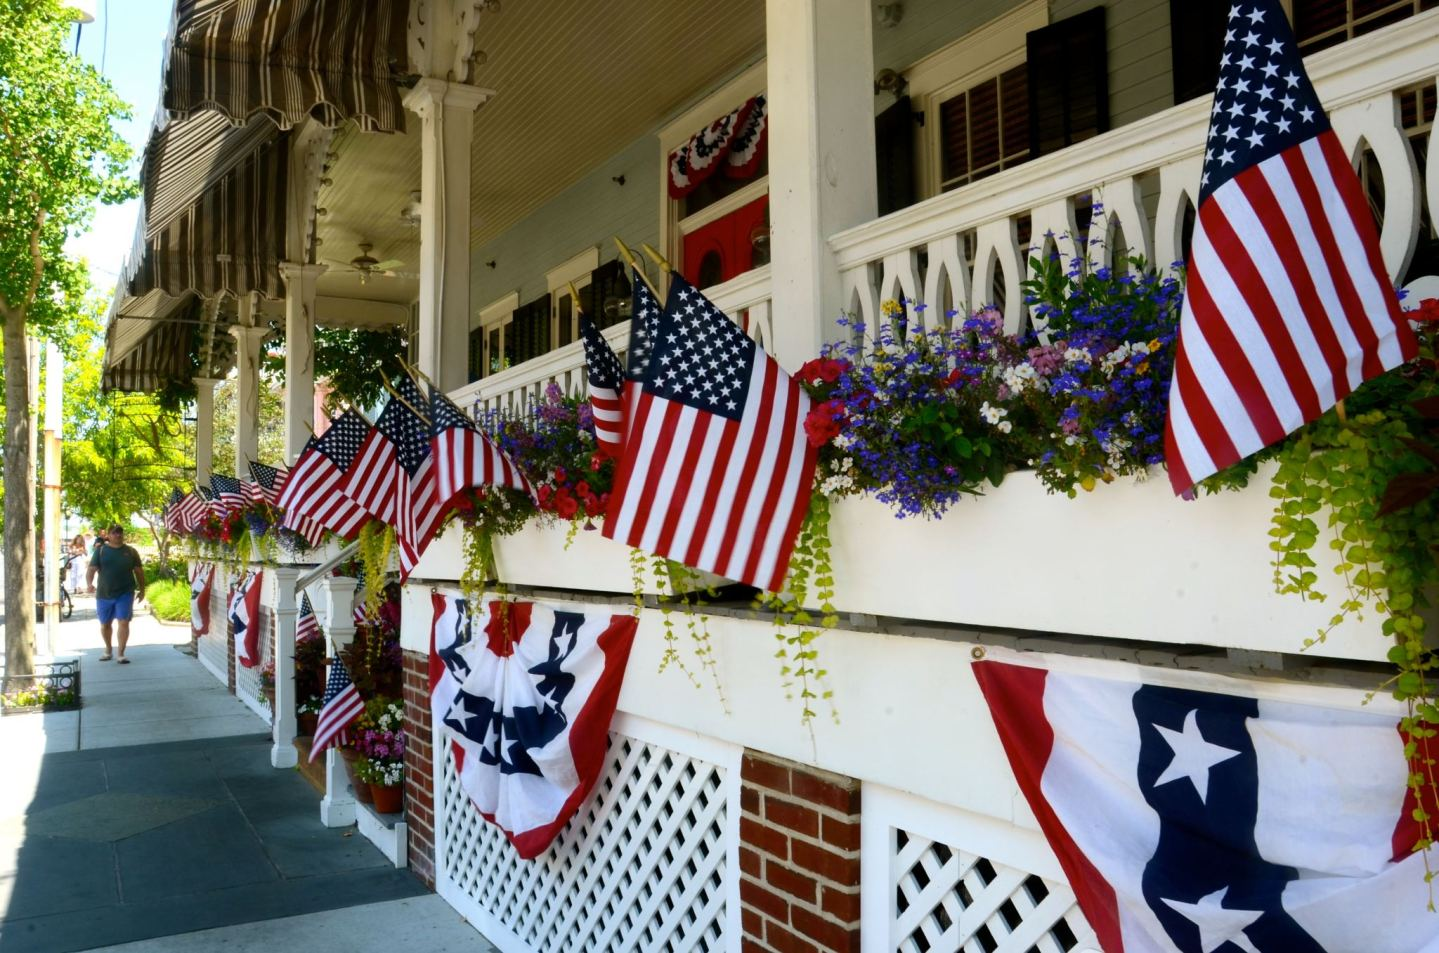 Cape May, NJ: Images of Independence Day Done Right!